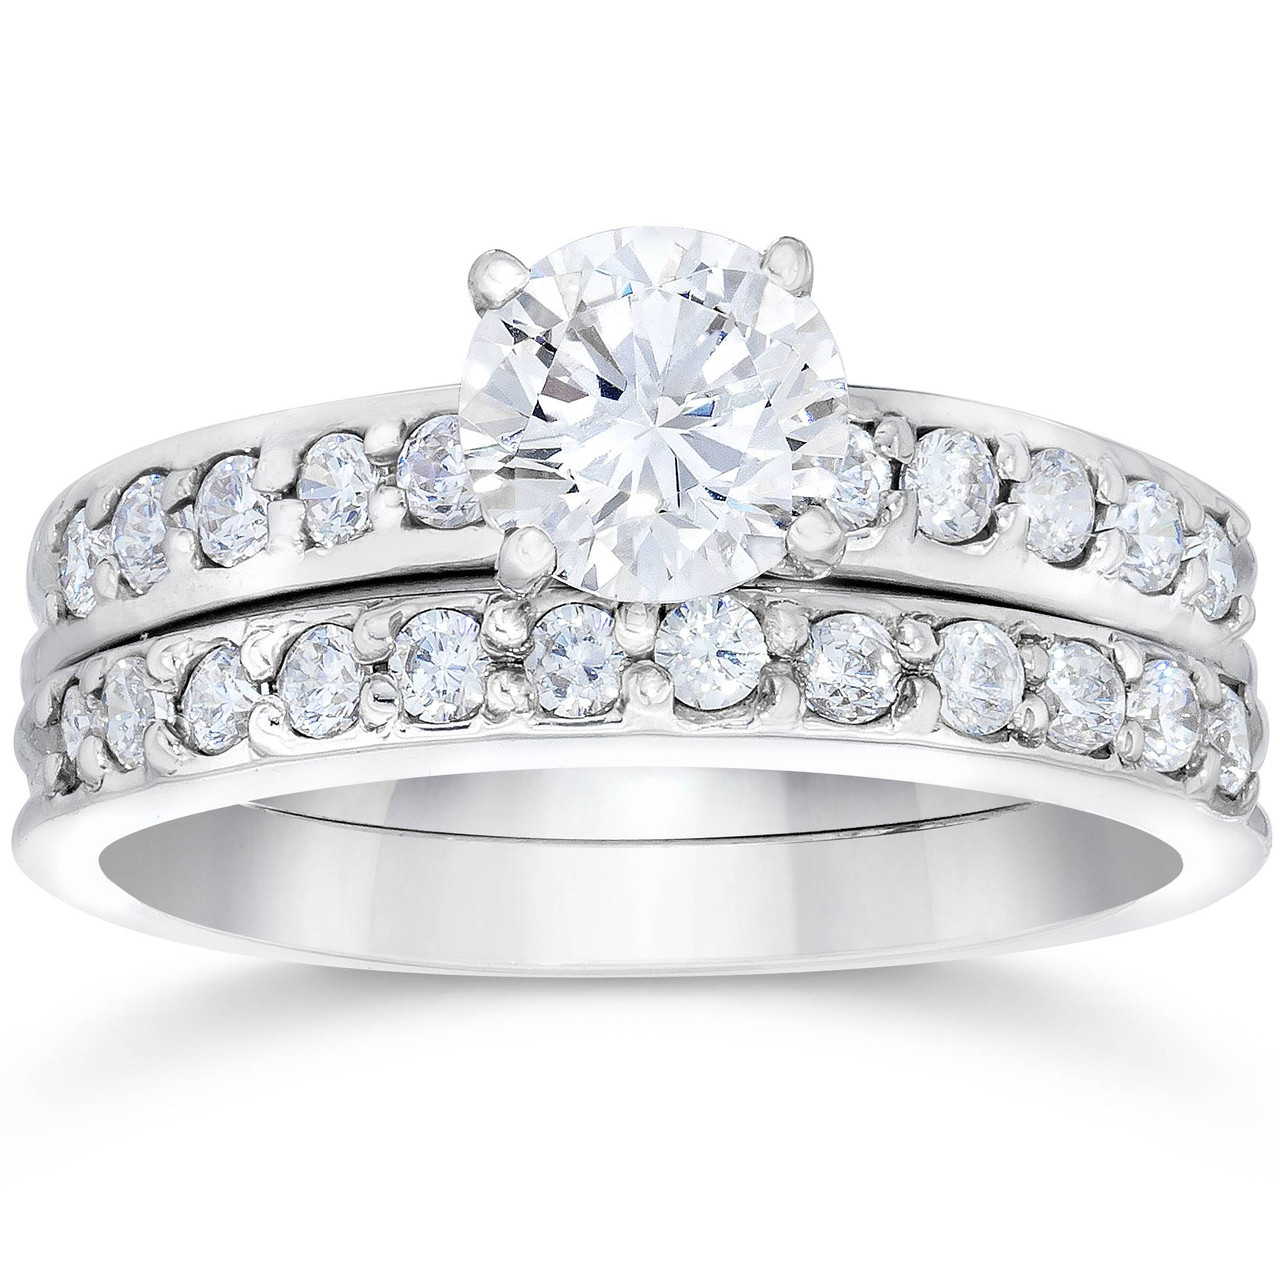 band ring eternity diamond diana wedding f img jewellery rafael products carat